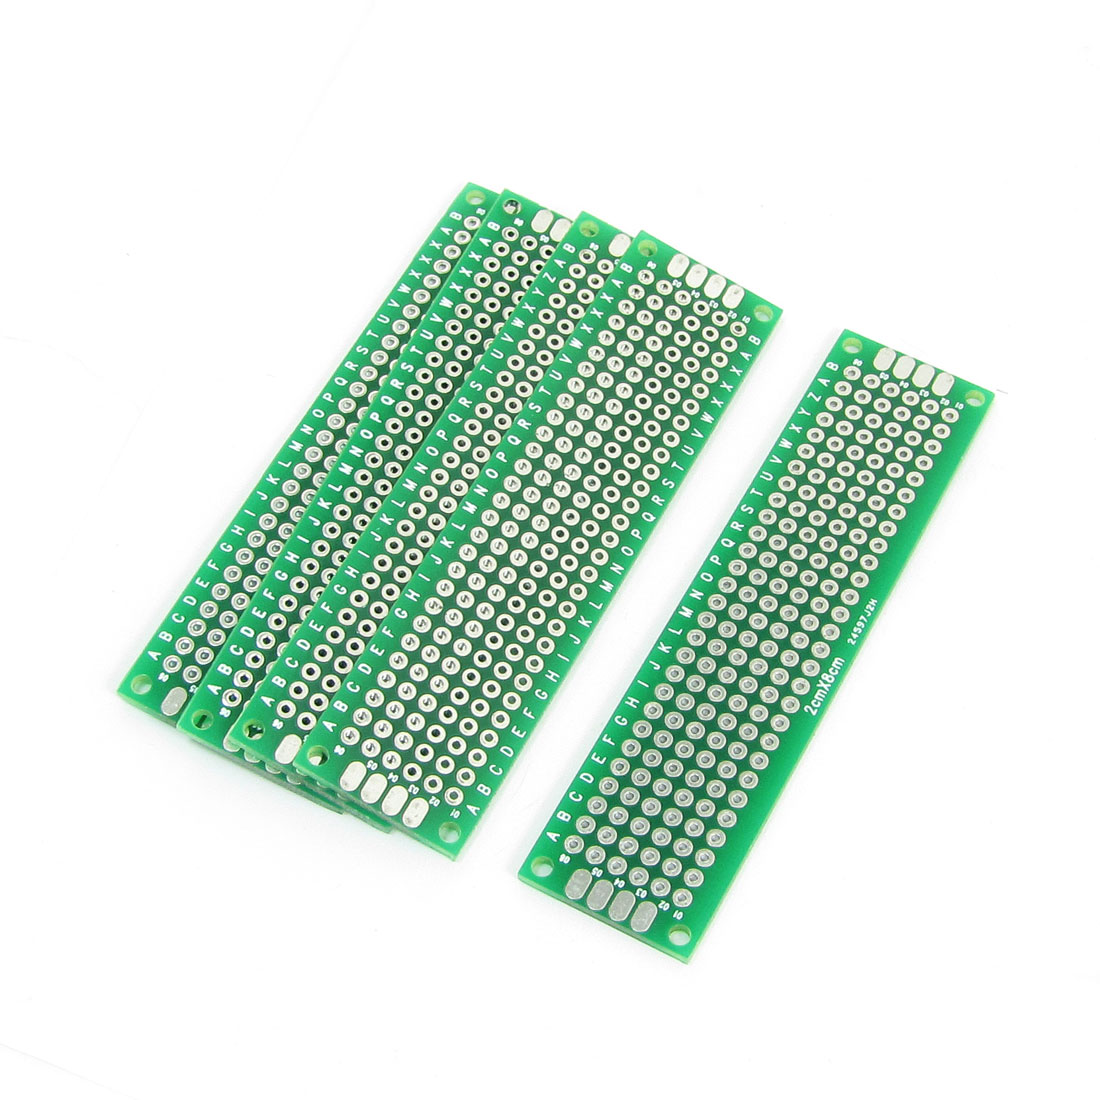 2cmx8cm Green Double-sided Hot Air Solder Leveling Boards 5Pcs